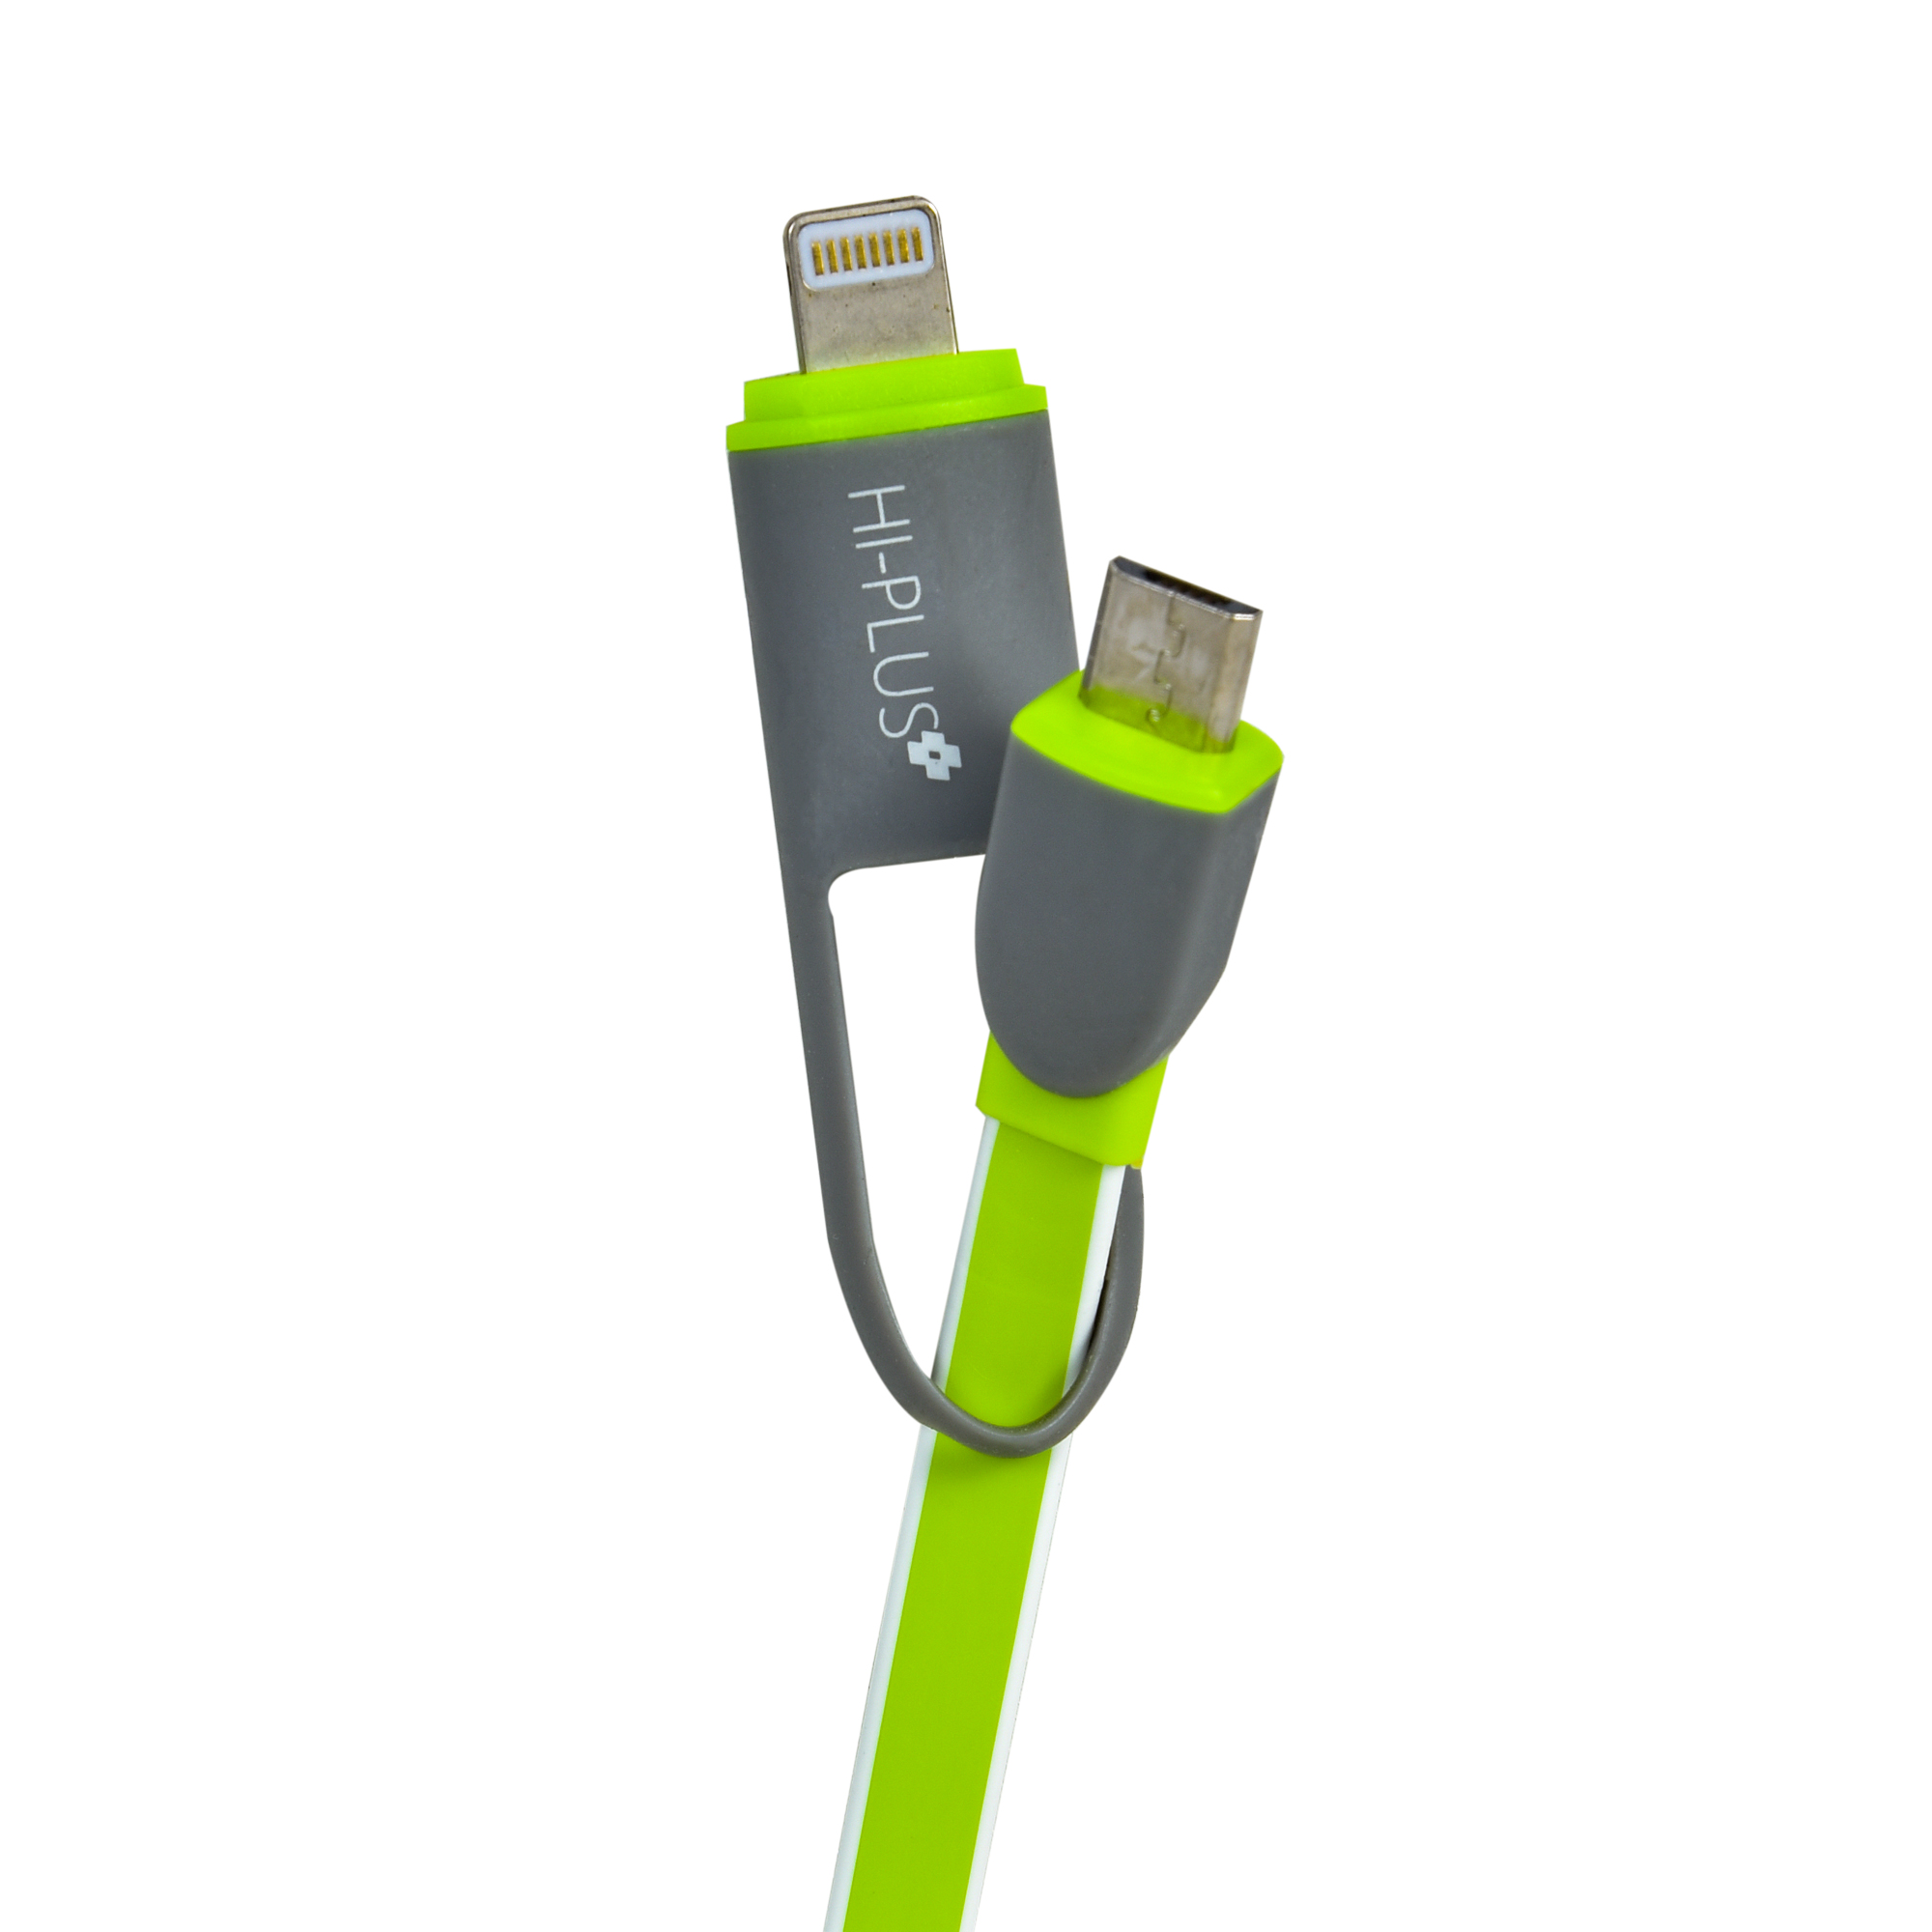 Lightning Fast 2 in 1 Data Cable for iPhone and Android